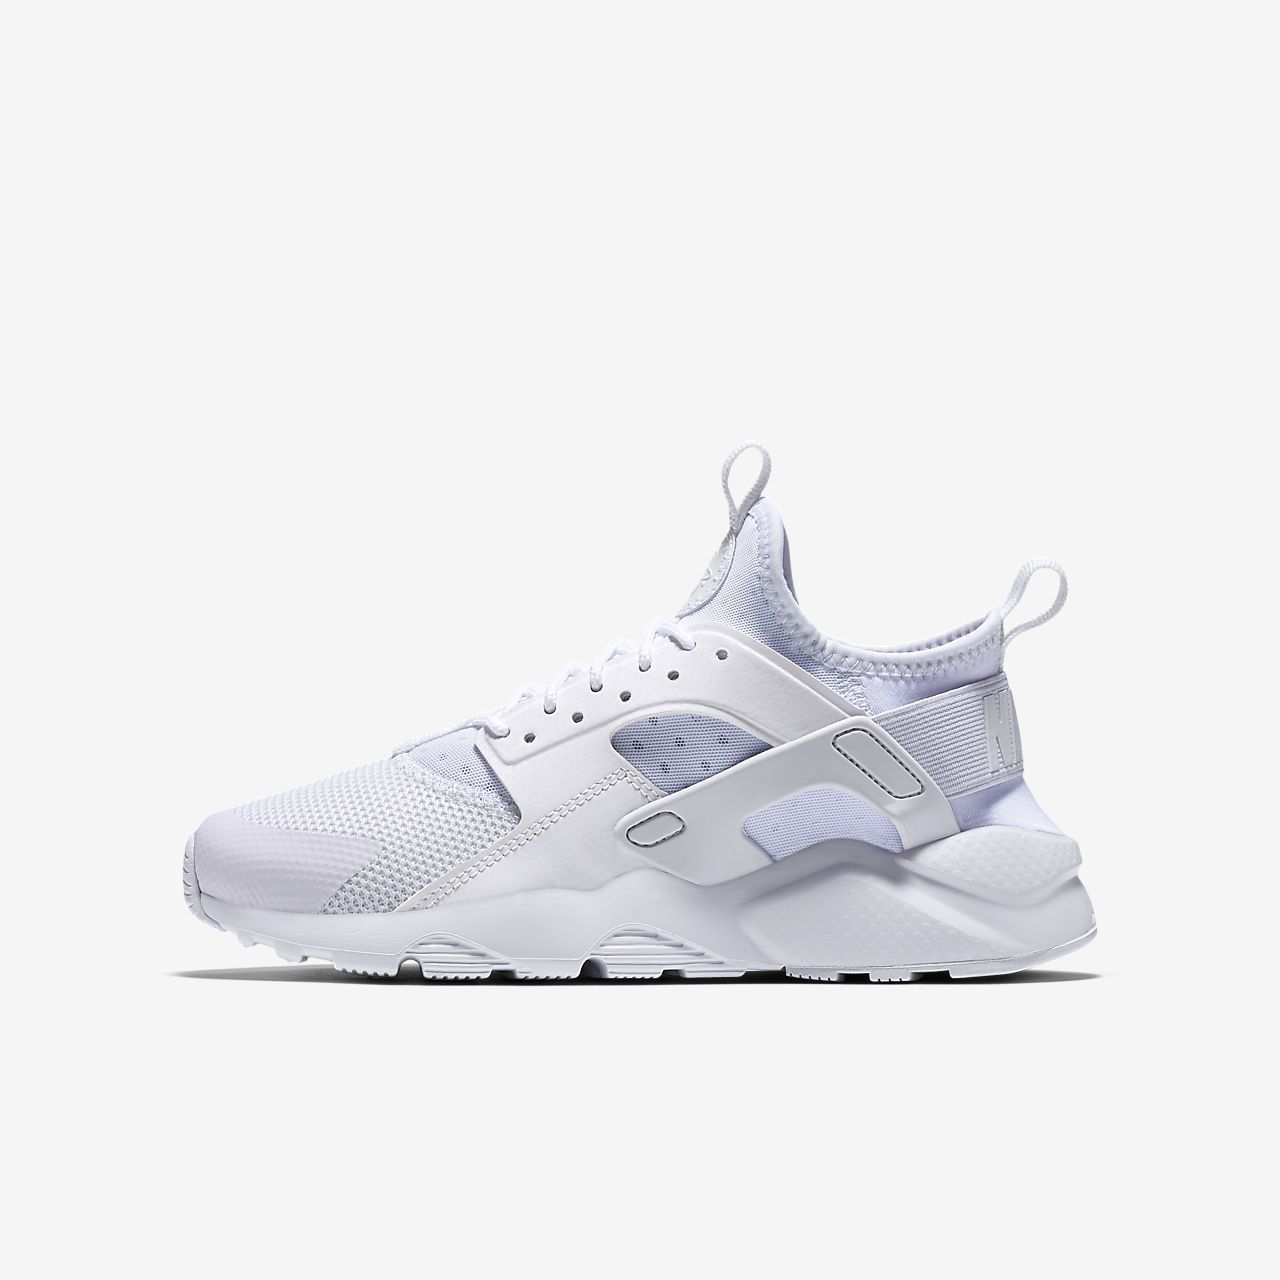 3a3cb917af489 Nike Air Huarache Ultra Older Kids  Shoe. Nike.com GB